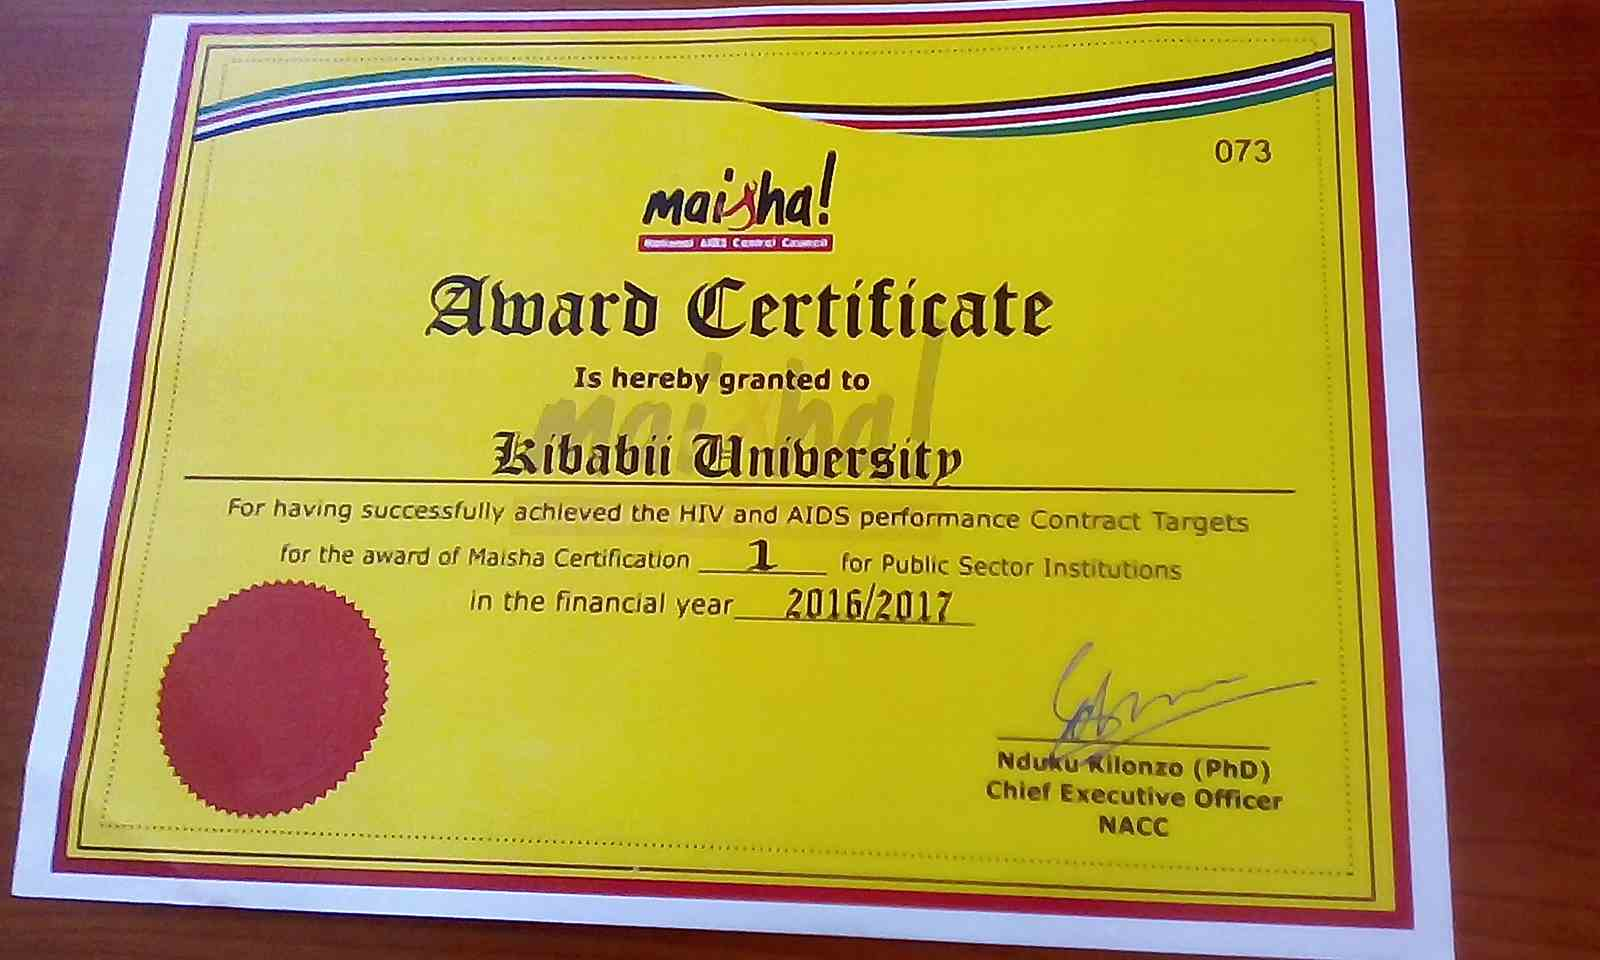 Directorate of AIDS Control Unit Certification by National AIDS Control Council